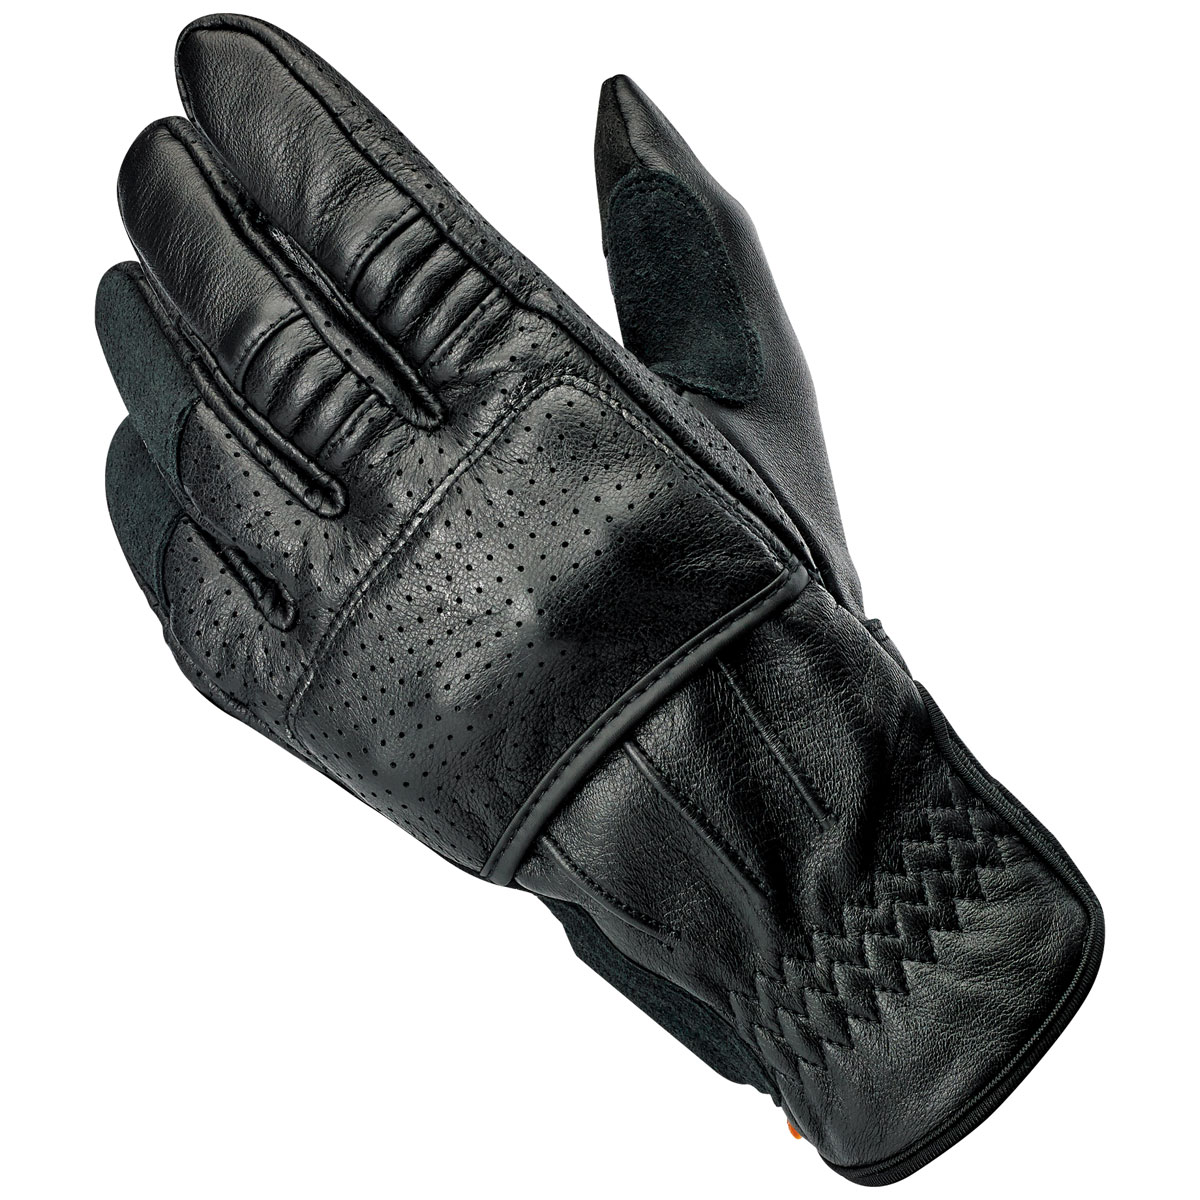 Biltwell Inc. Men's Borrego Black Leather Gloves